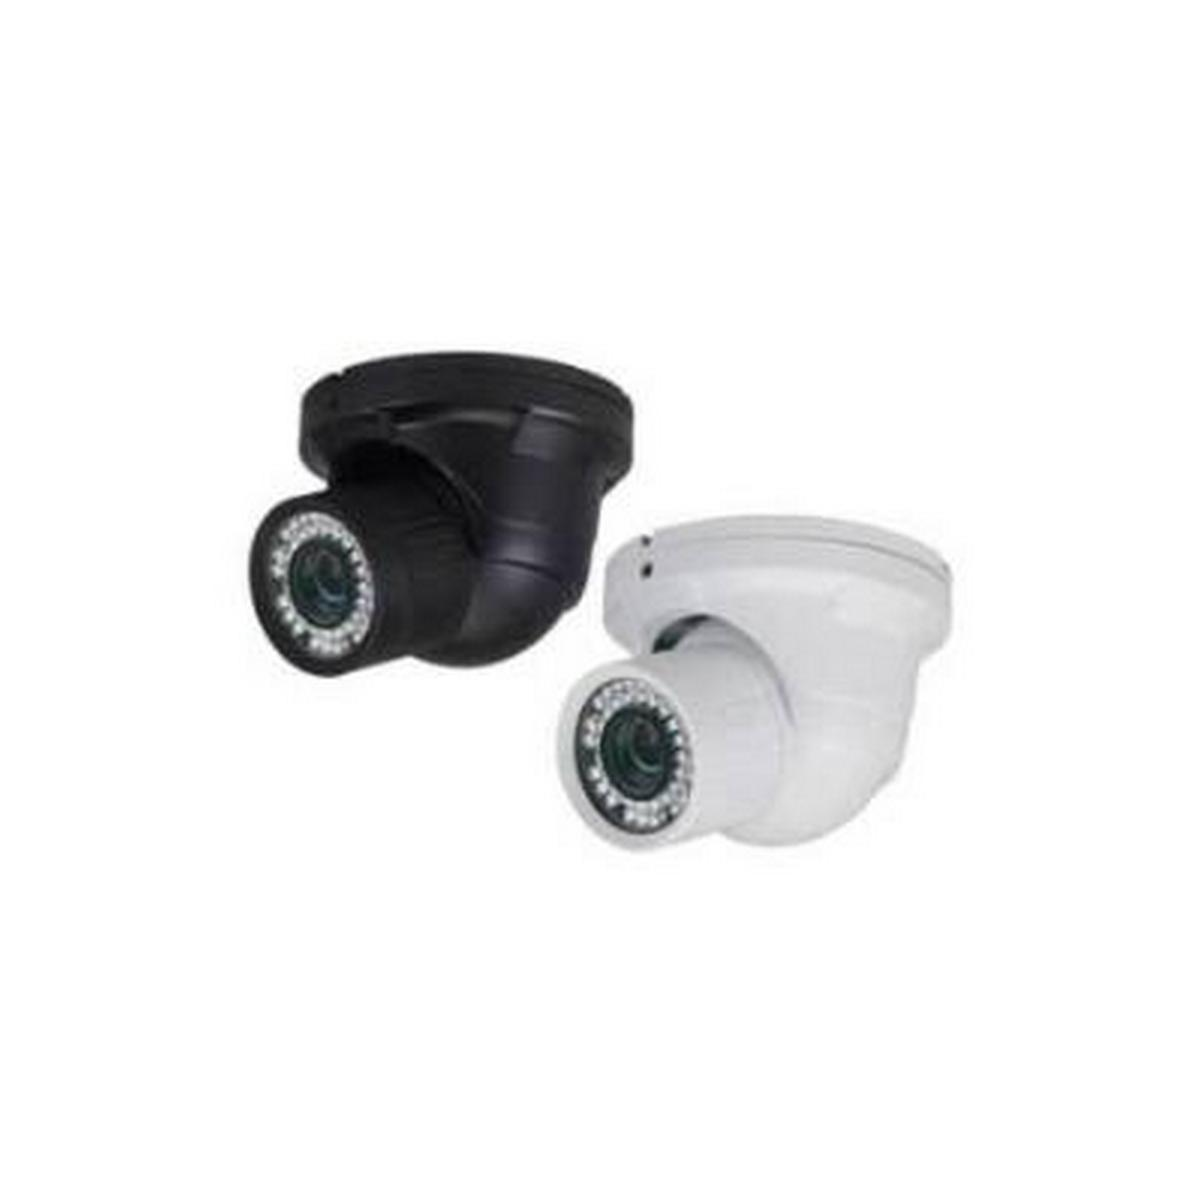 INDOOR/OUTDOOR VANDAL BLACK IR DOME, 1/3 SONY SUPER HAD II, 600TV LINES, SSNRIII, 2.8-12MM LENS, 75FT IR, 12VDC/24VAC - NO POWER SUPPLY INCLUDED